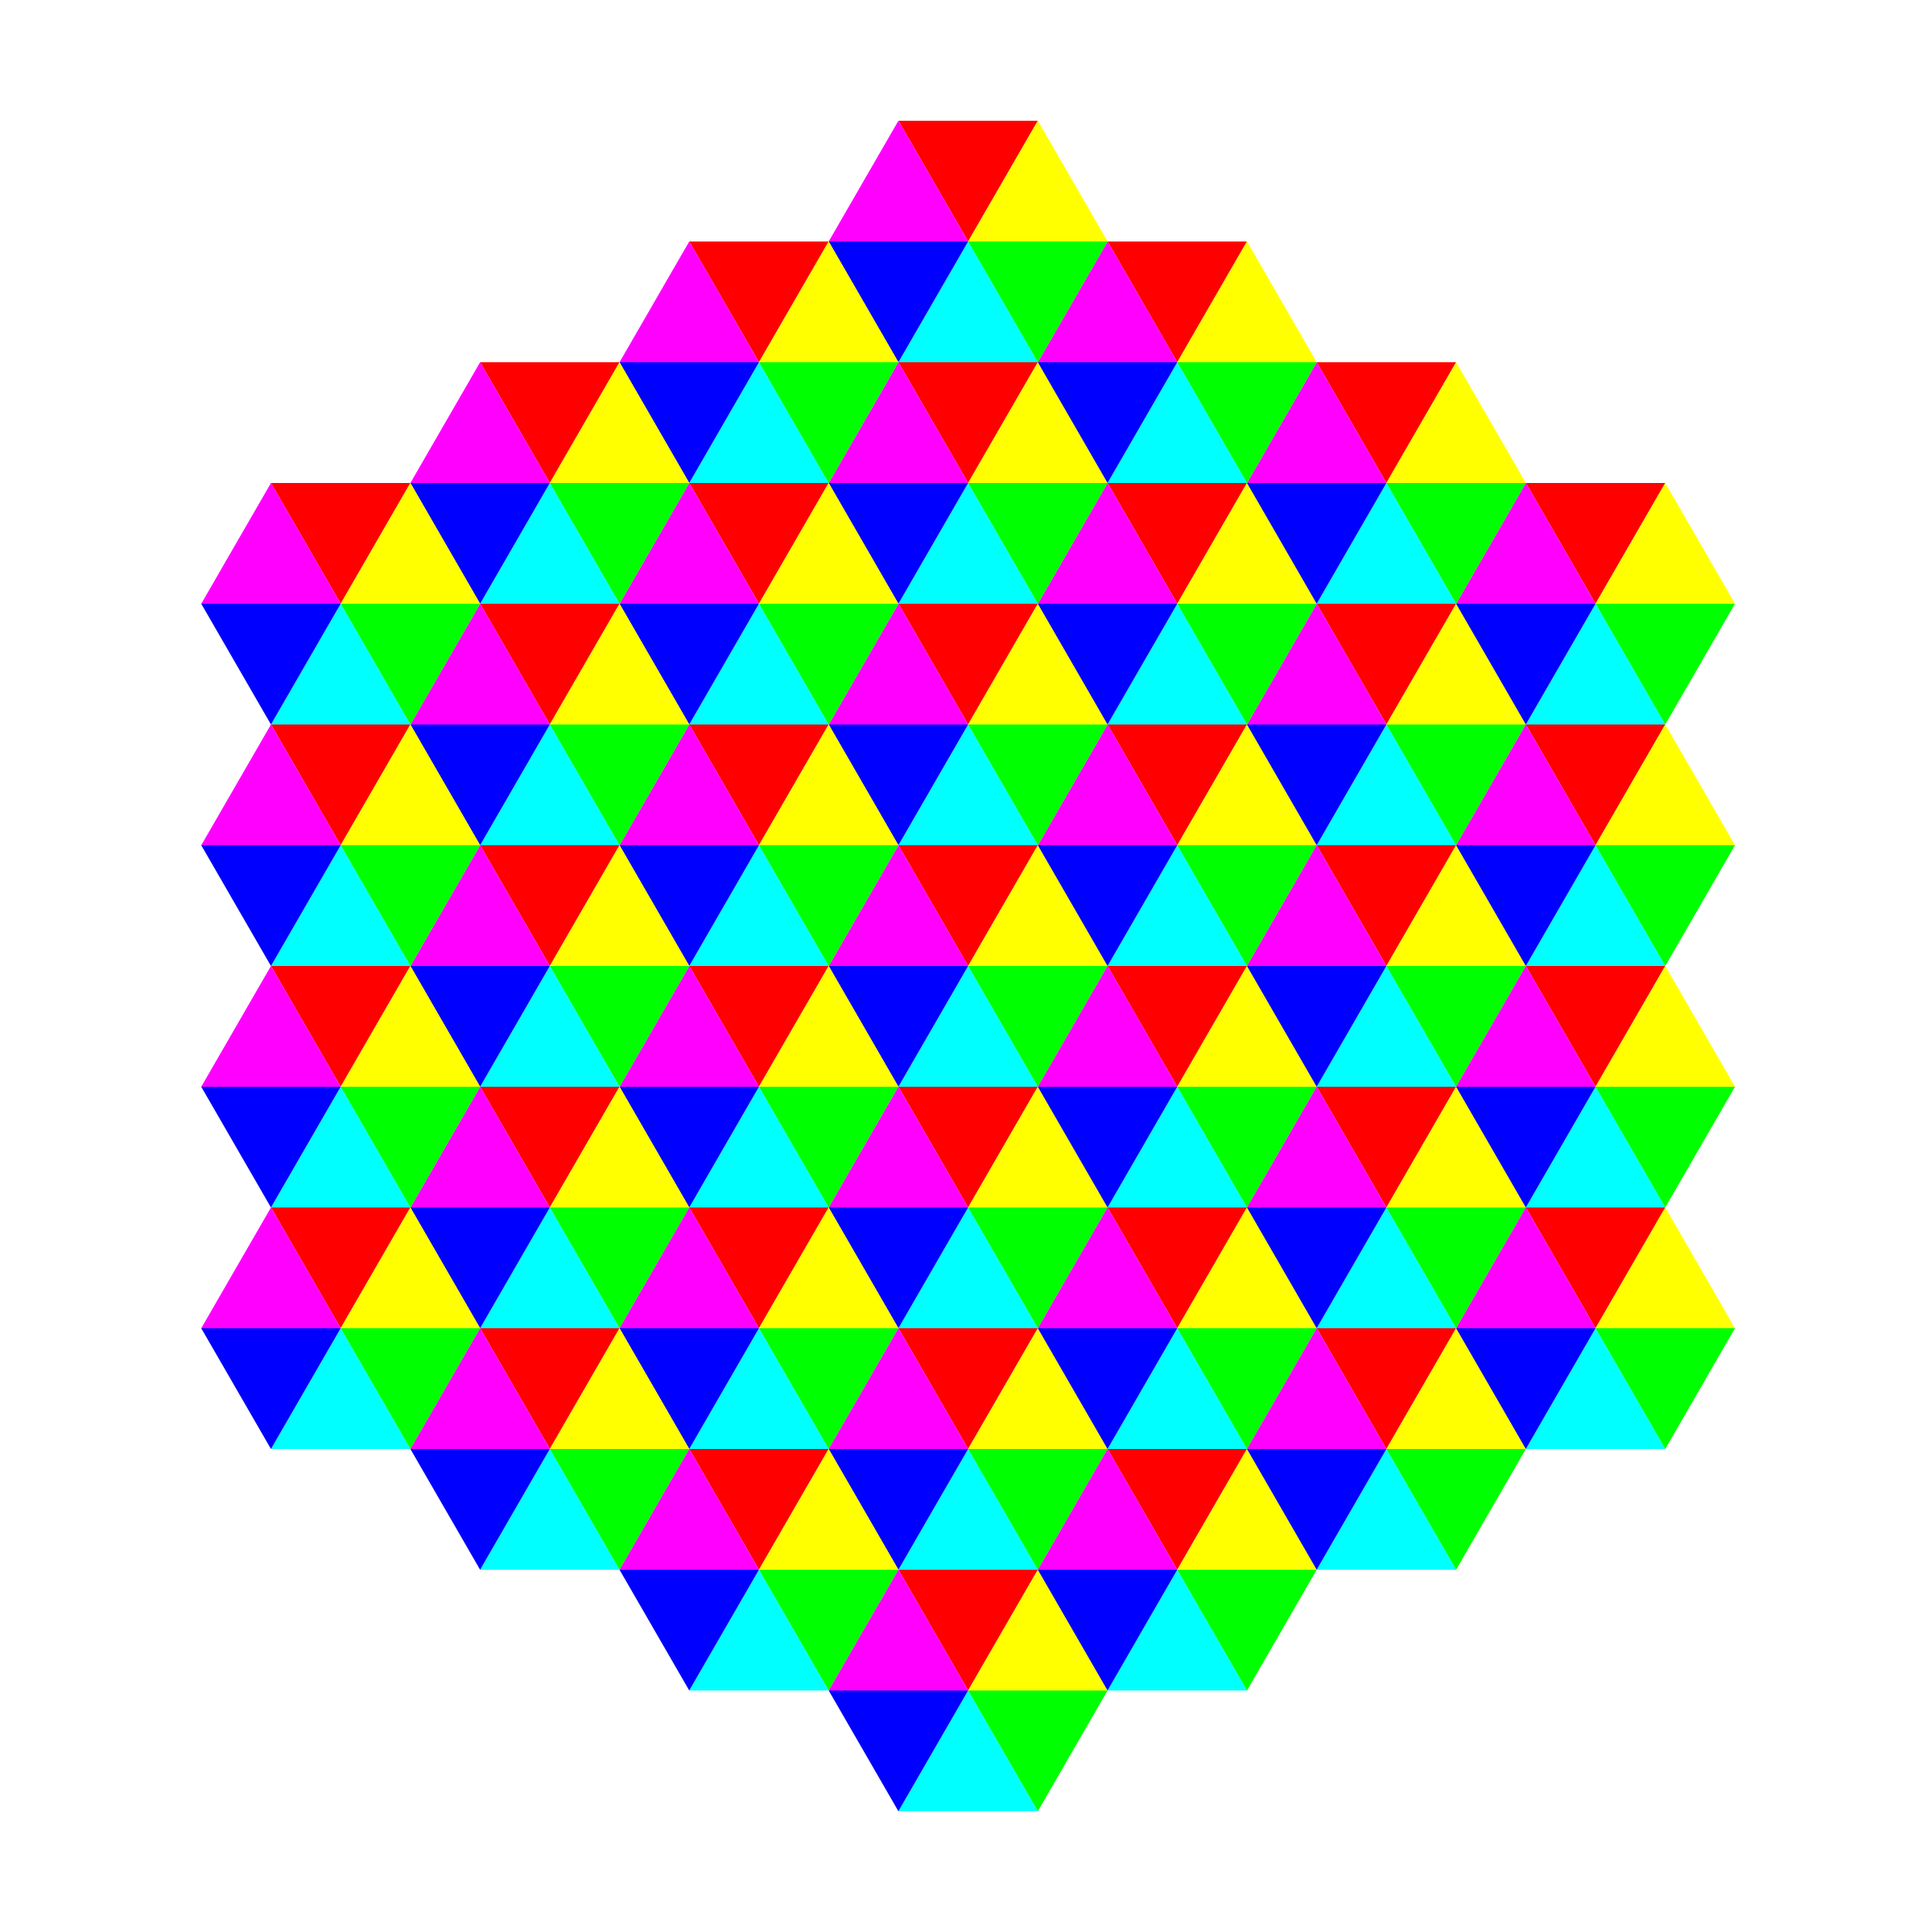 hexagonal triangle tessellation by 10binary